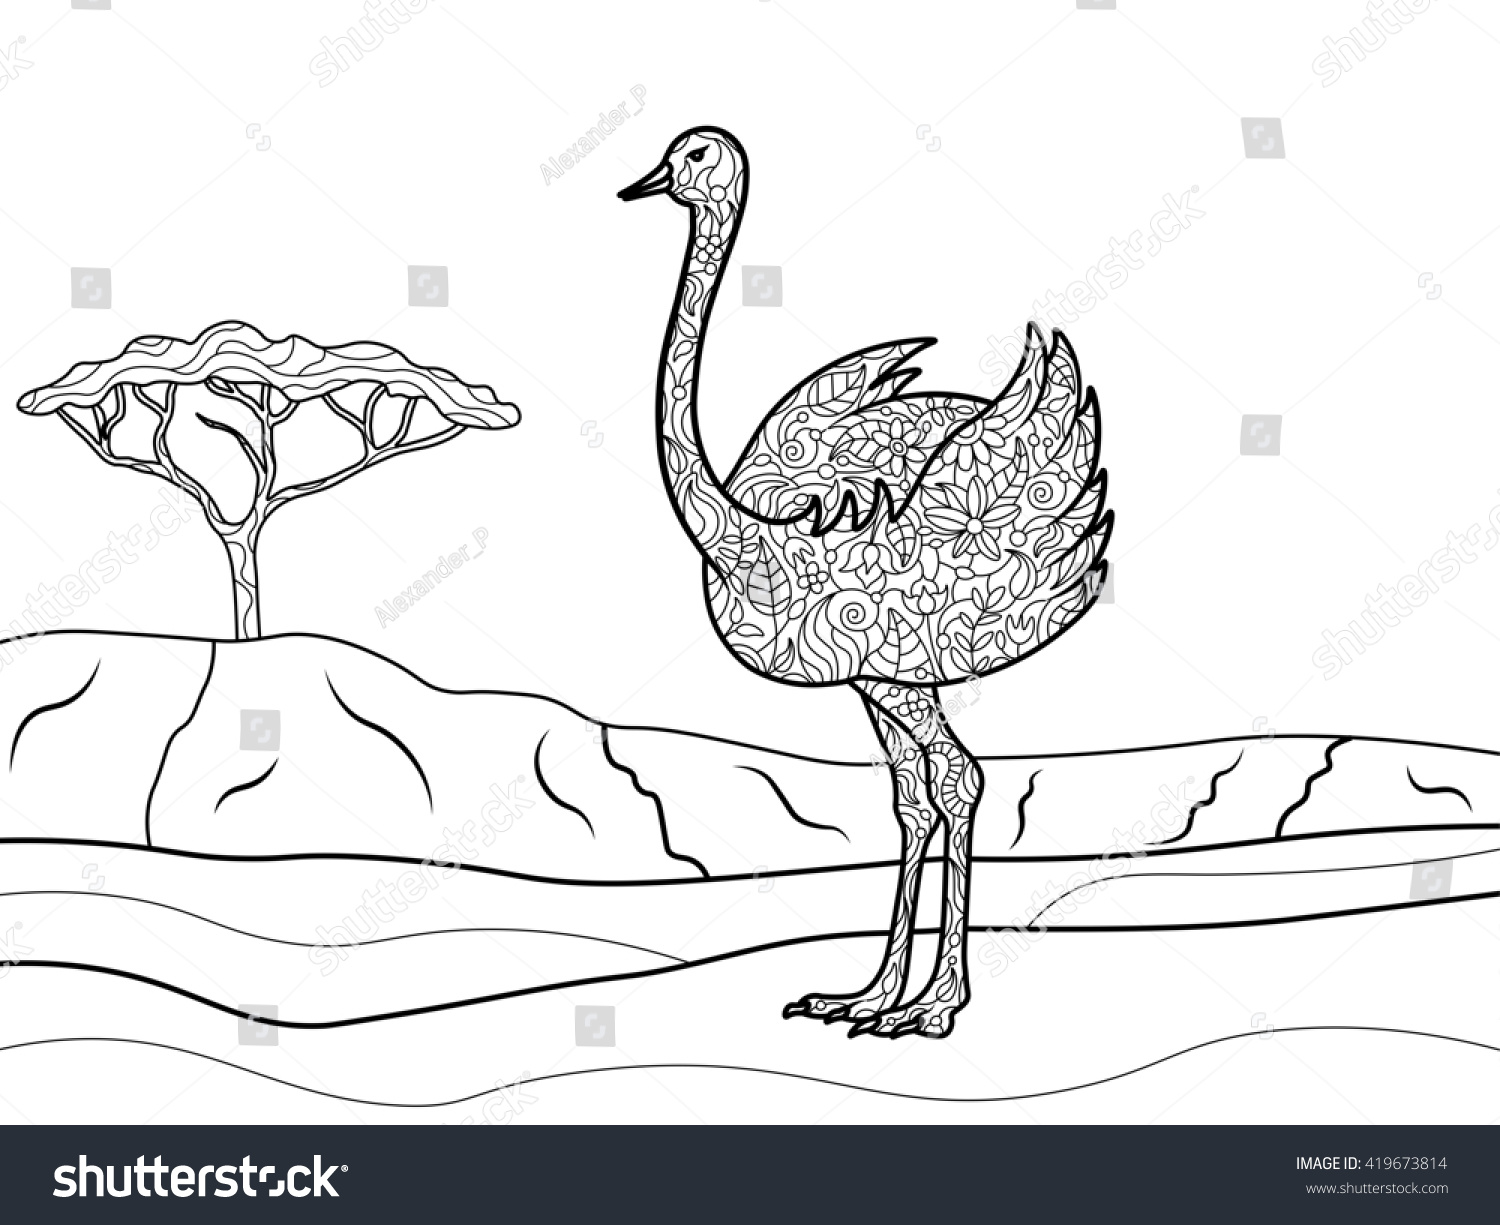 Ostrich Bird Coloring Book For Adults Raster Illustration Black And White Lines Lace Pattern